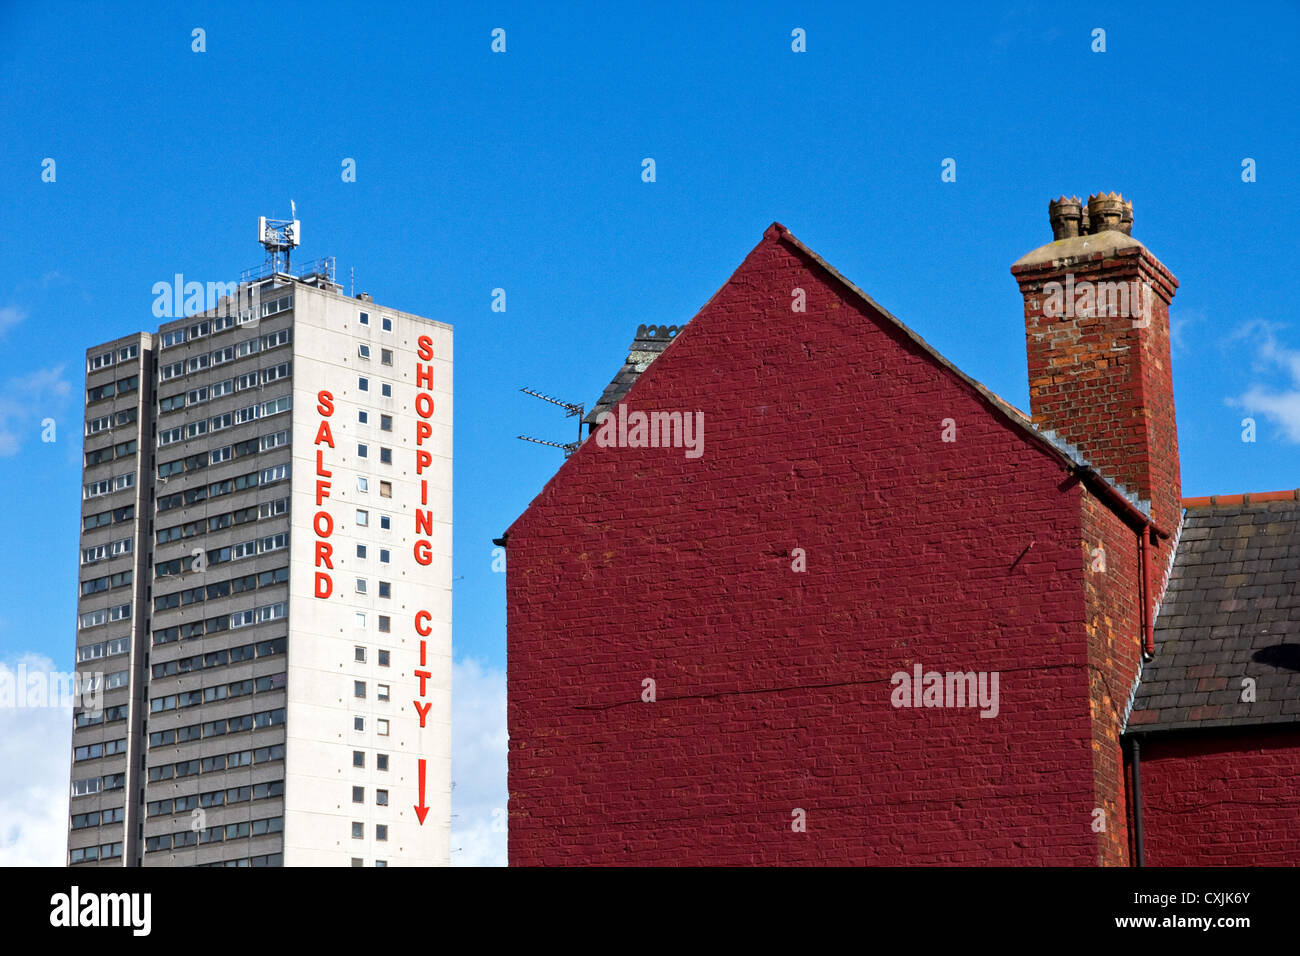 Salford Shopping City centre, Salford, Greater Manchester, England, UK - Stock Image